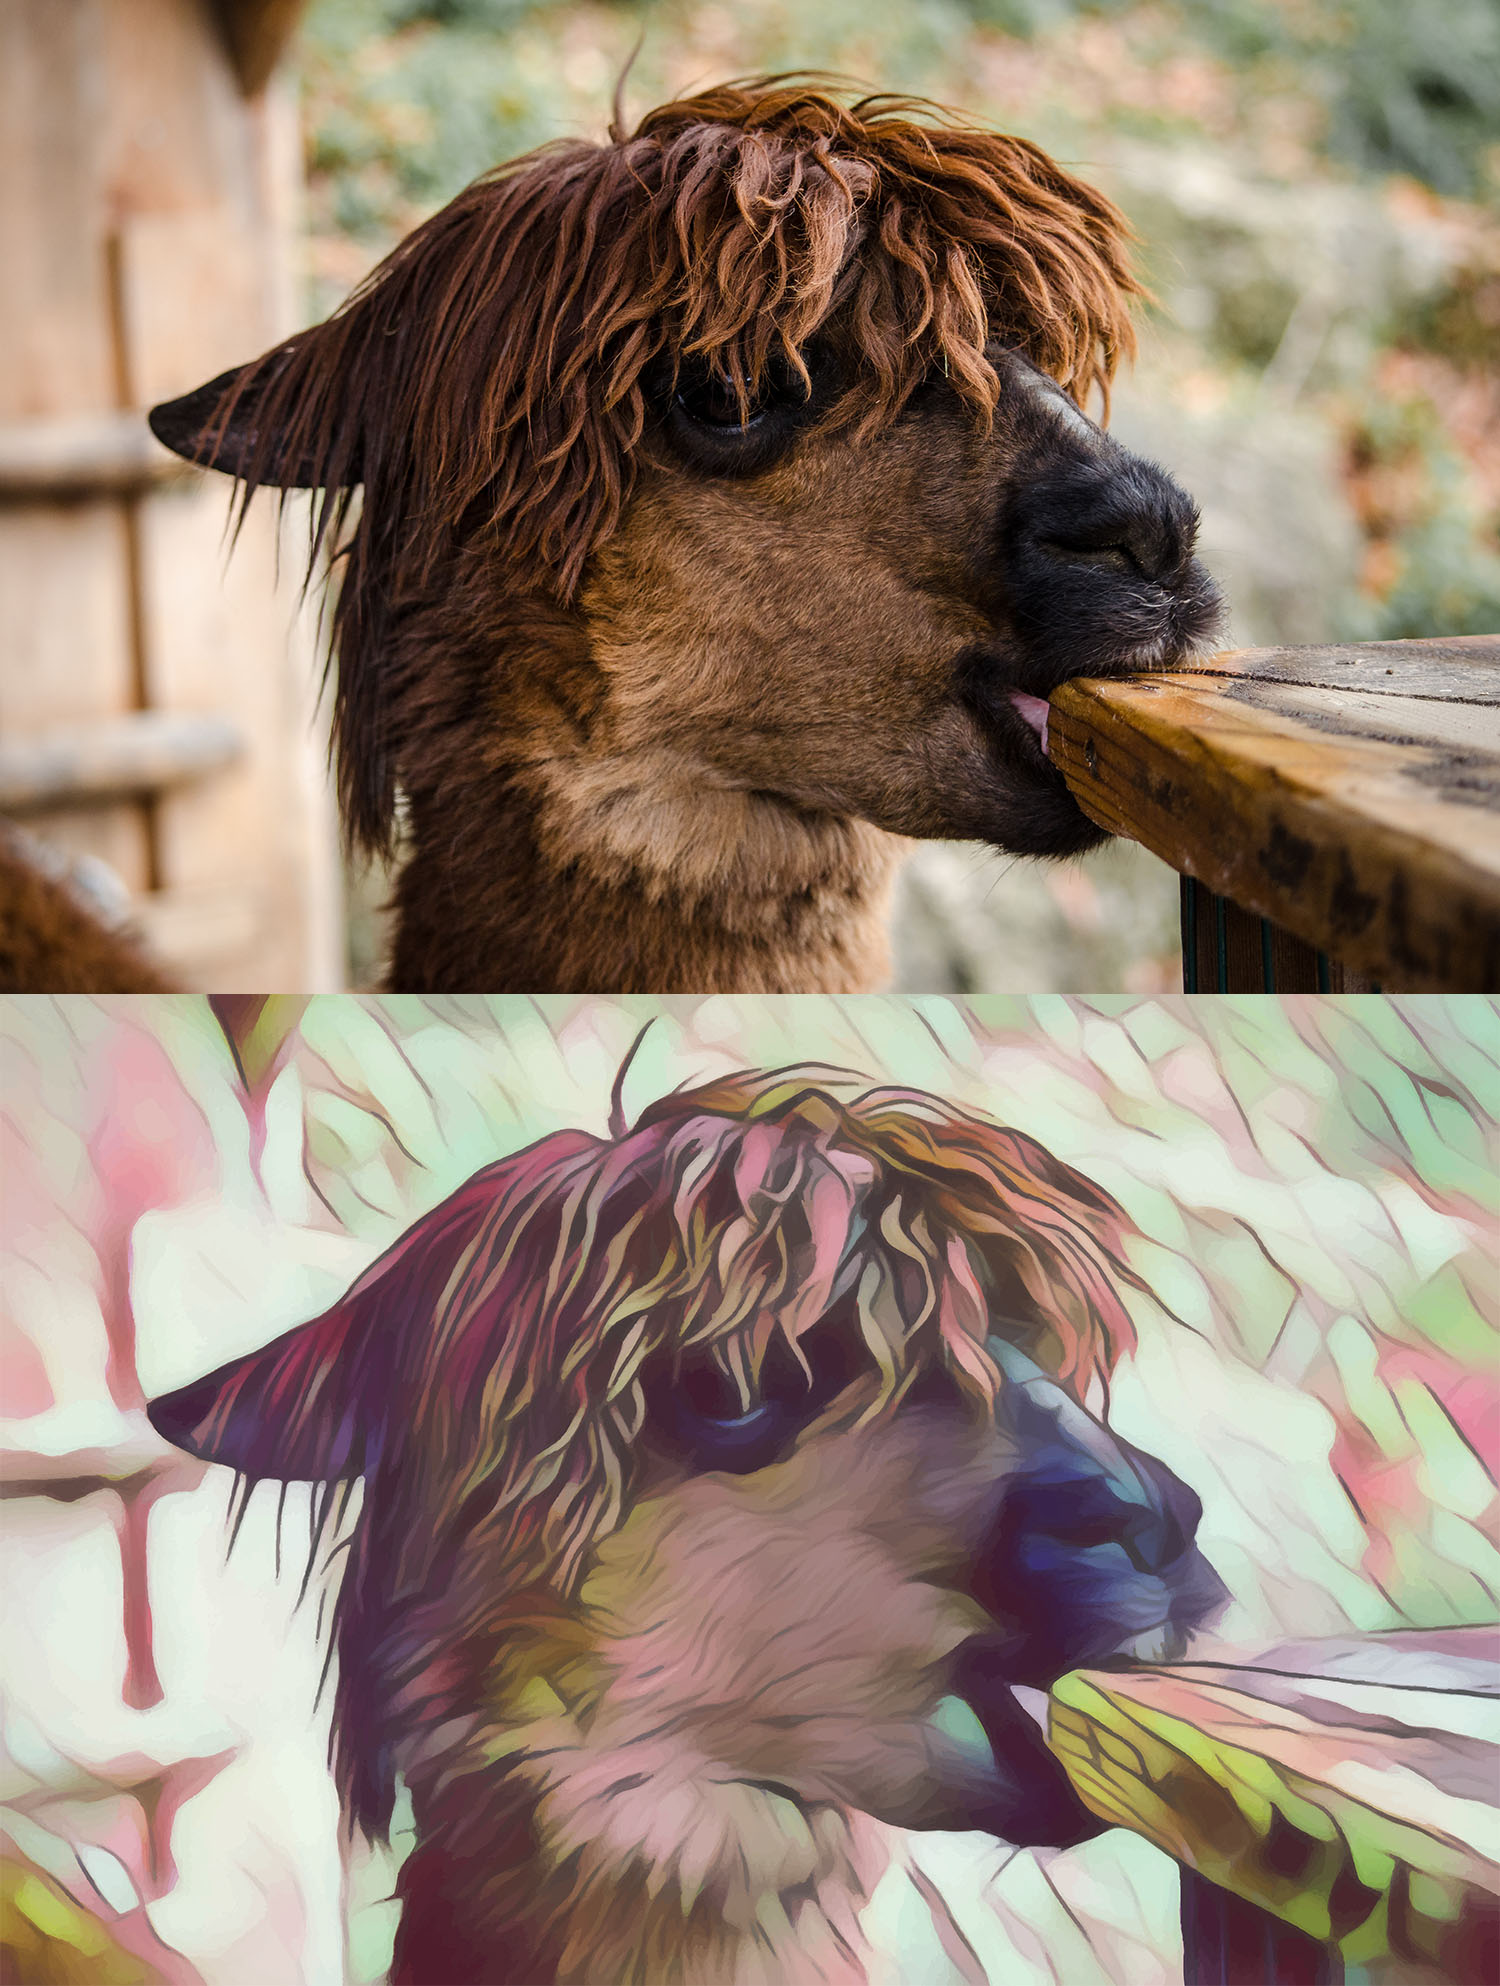 Before and after stylized image of a llama chewing on a table